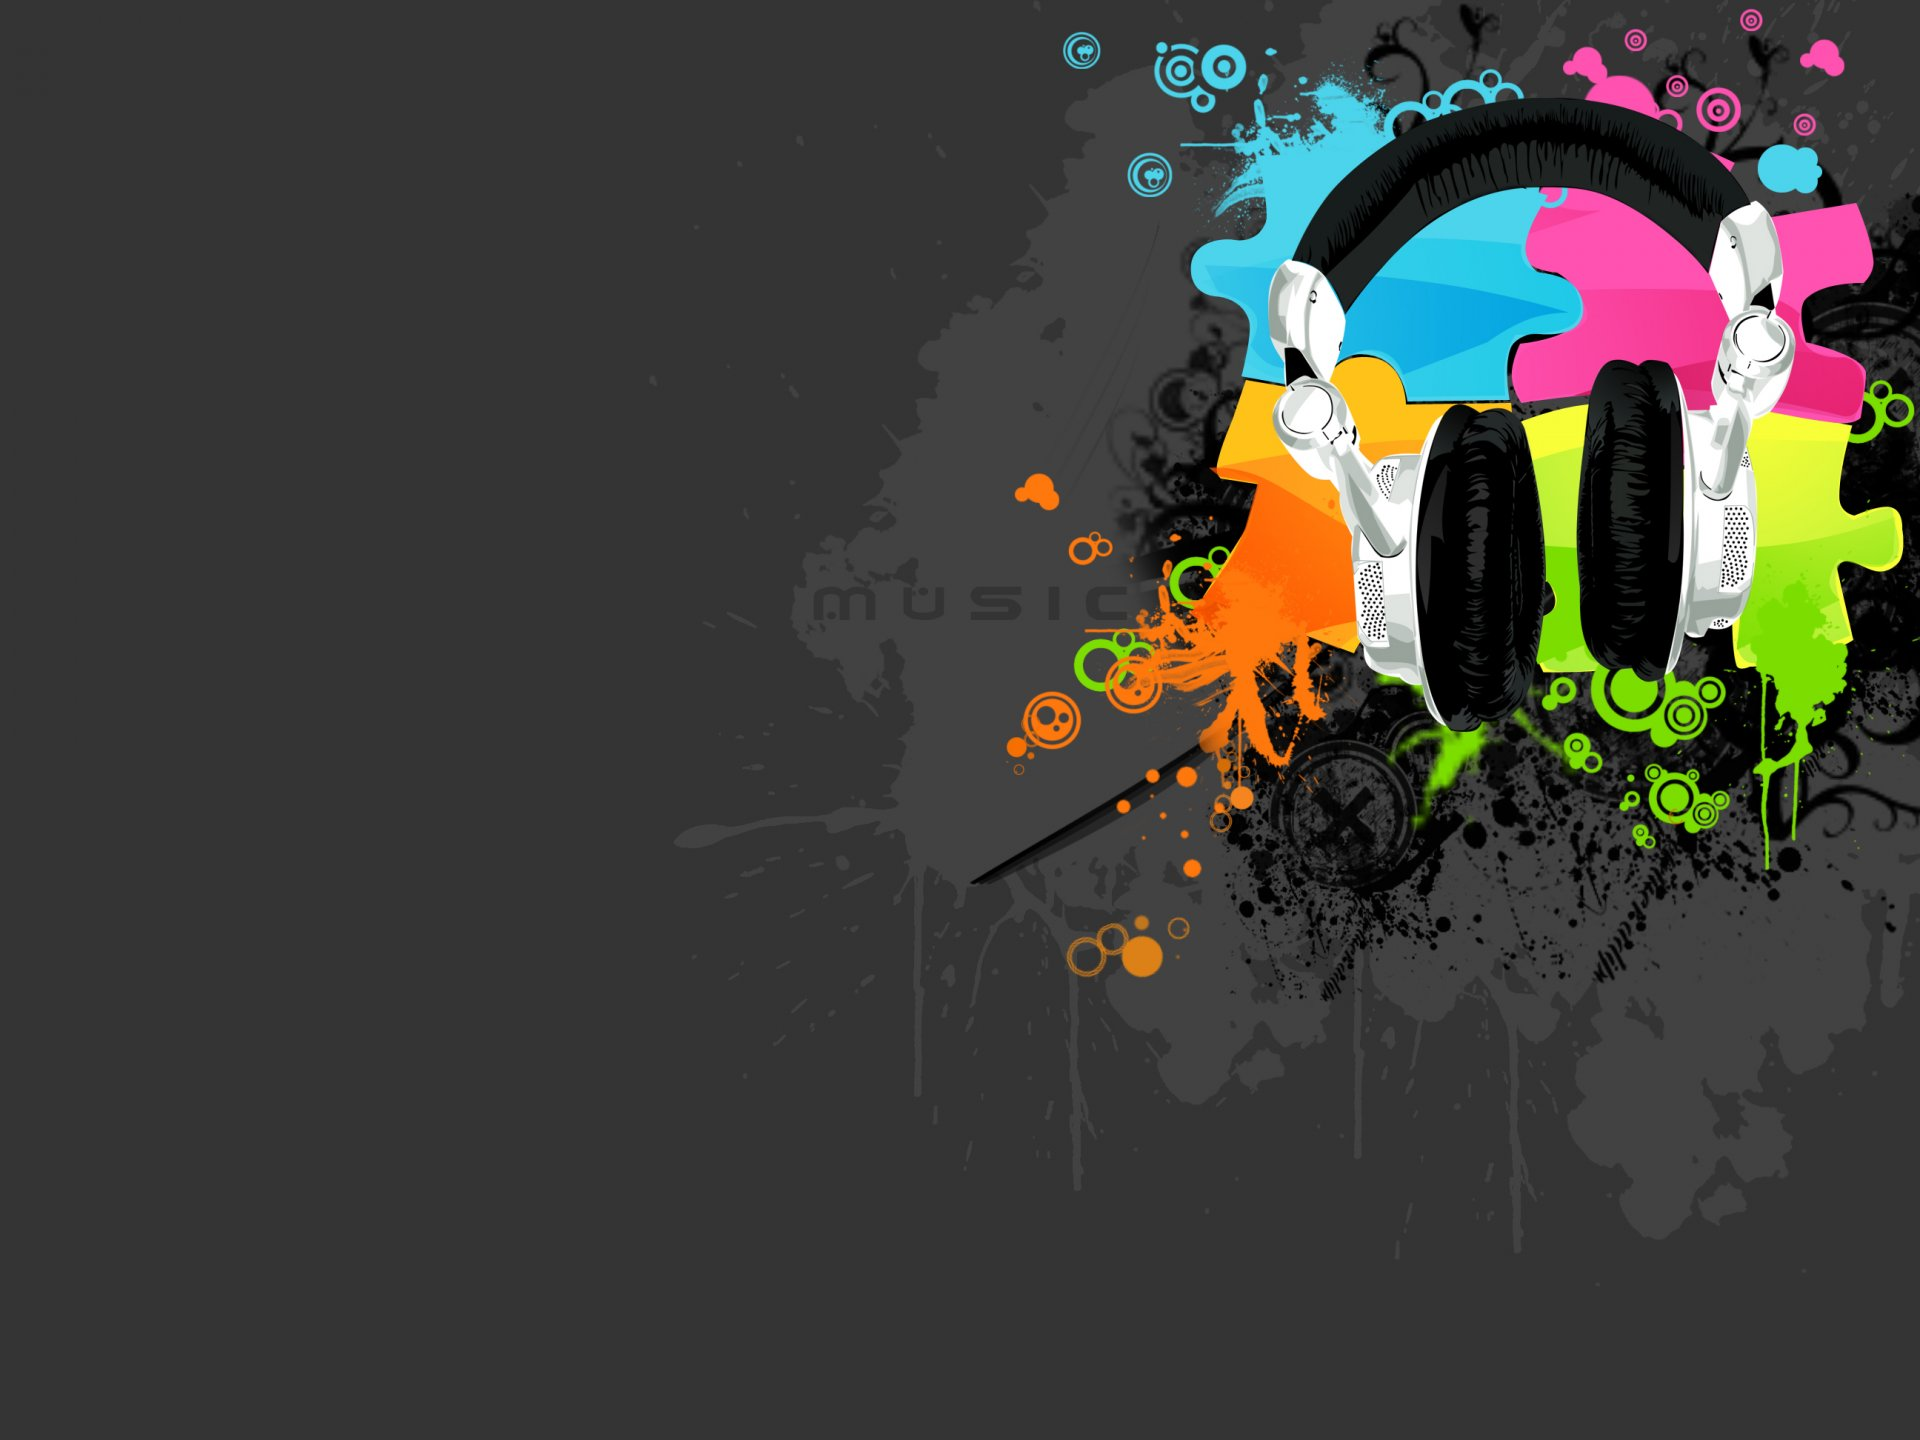 Pattern - Other  - Headphone - Hd - Style - Design - Music Wallpaper